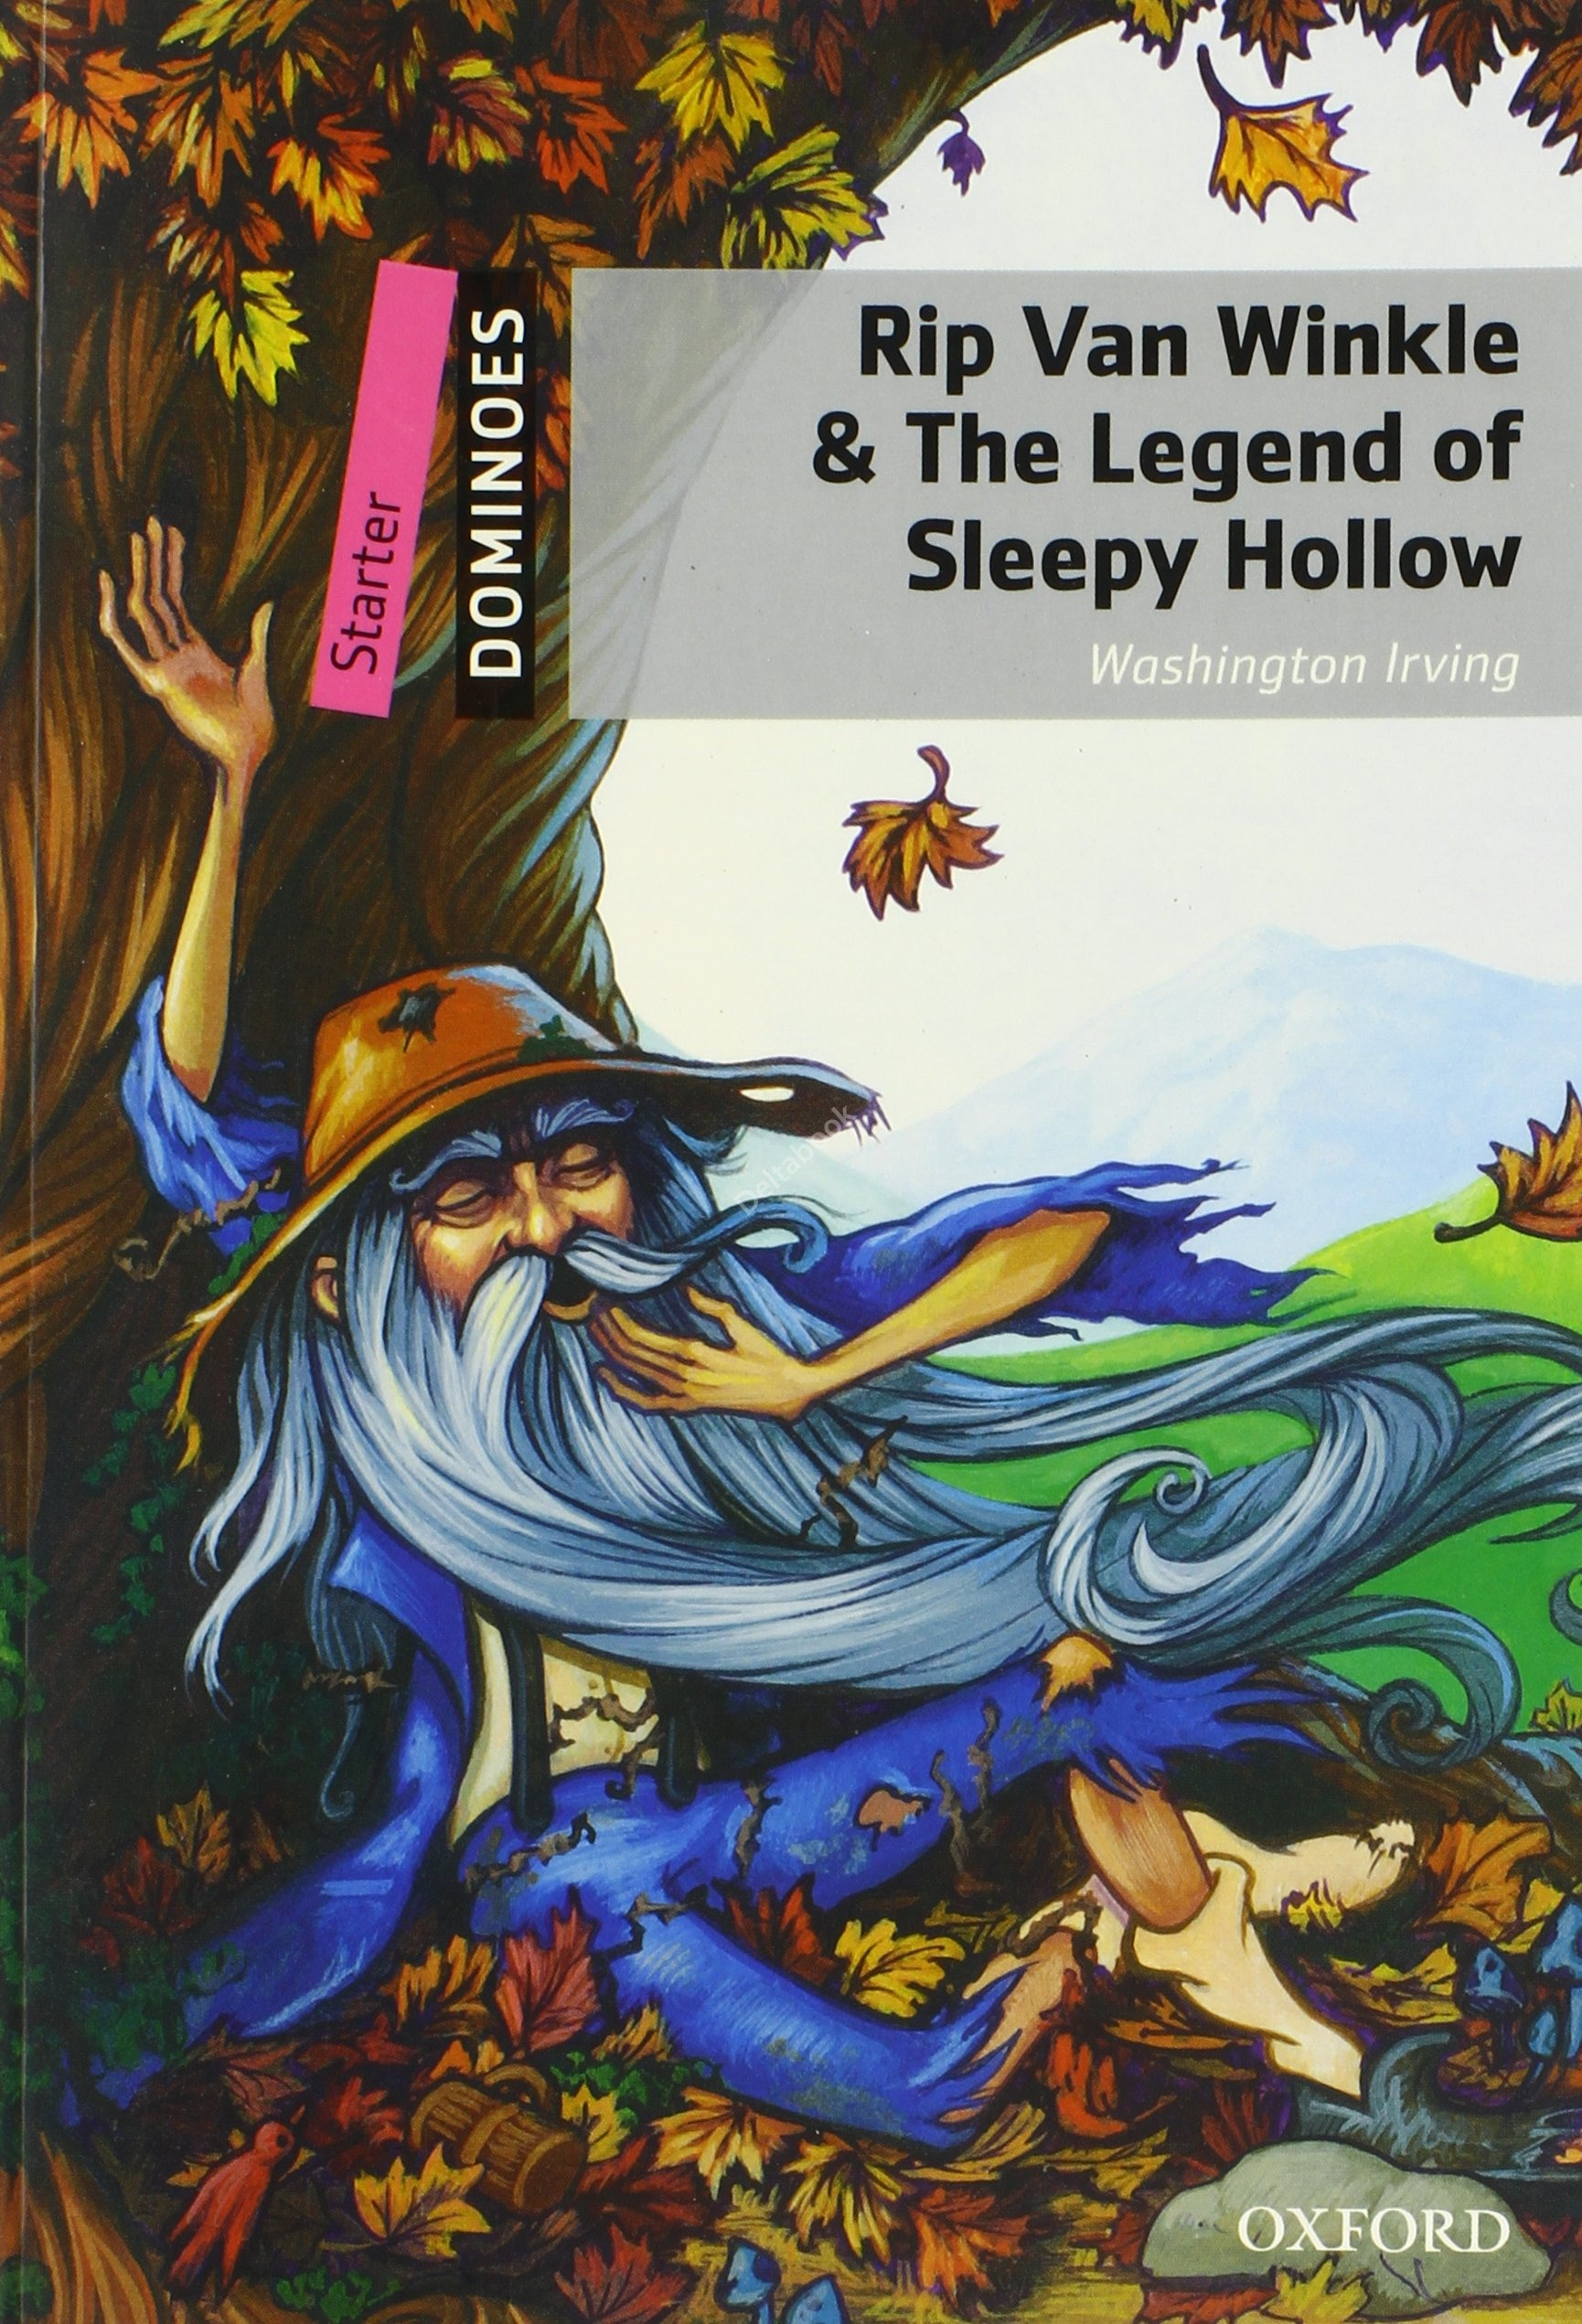 Rip Van Winkle & The Legend of Sleepy Hollow  Story Collections